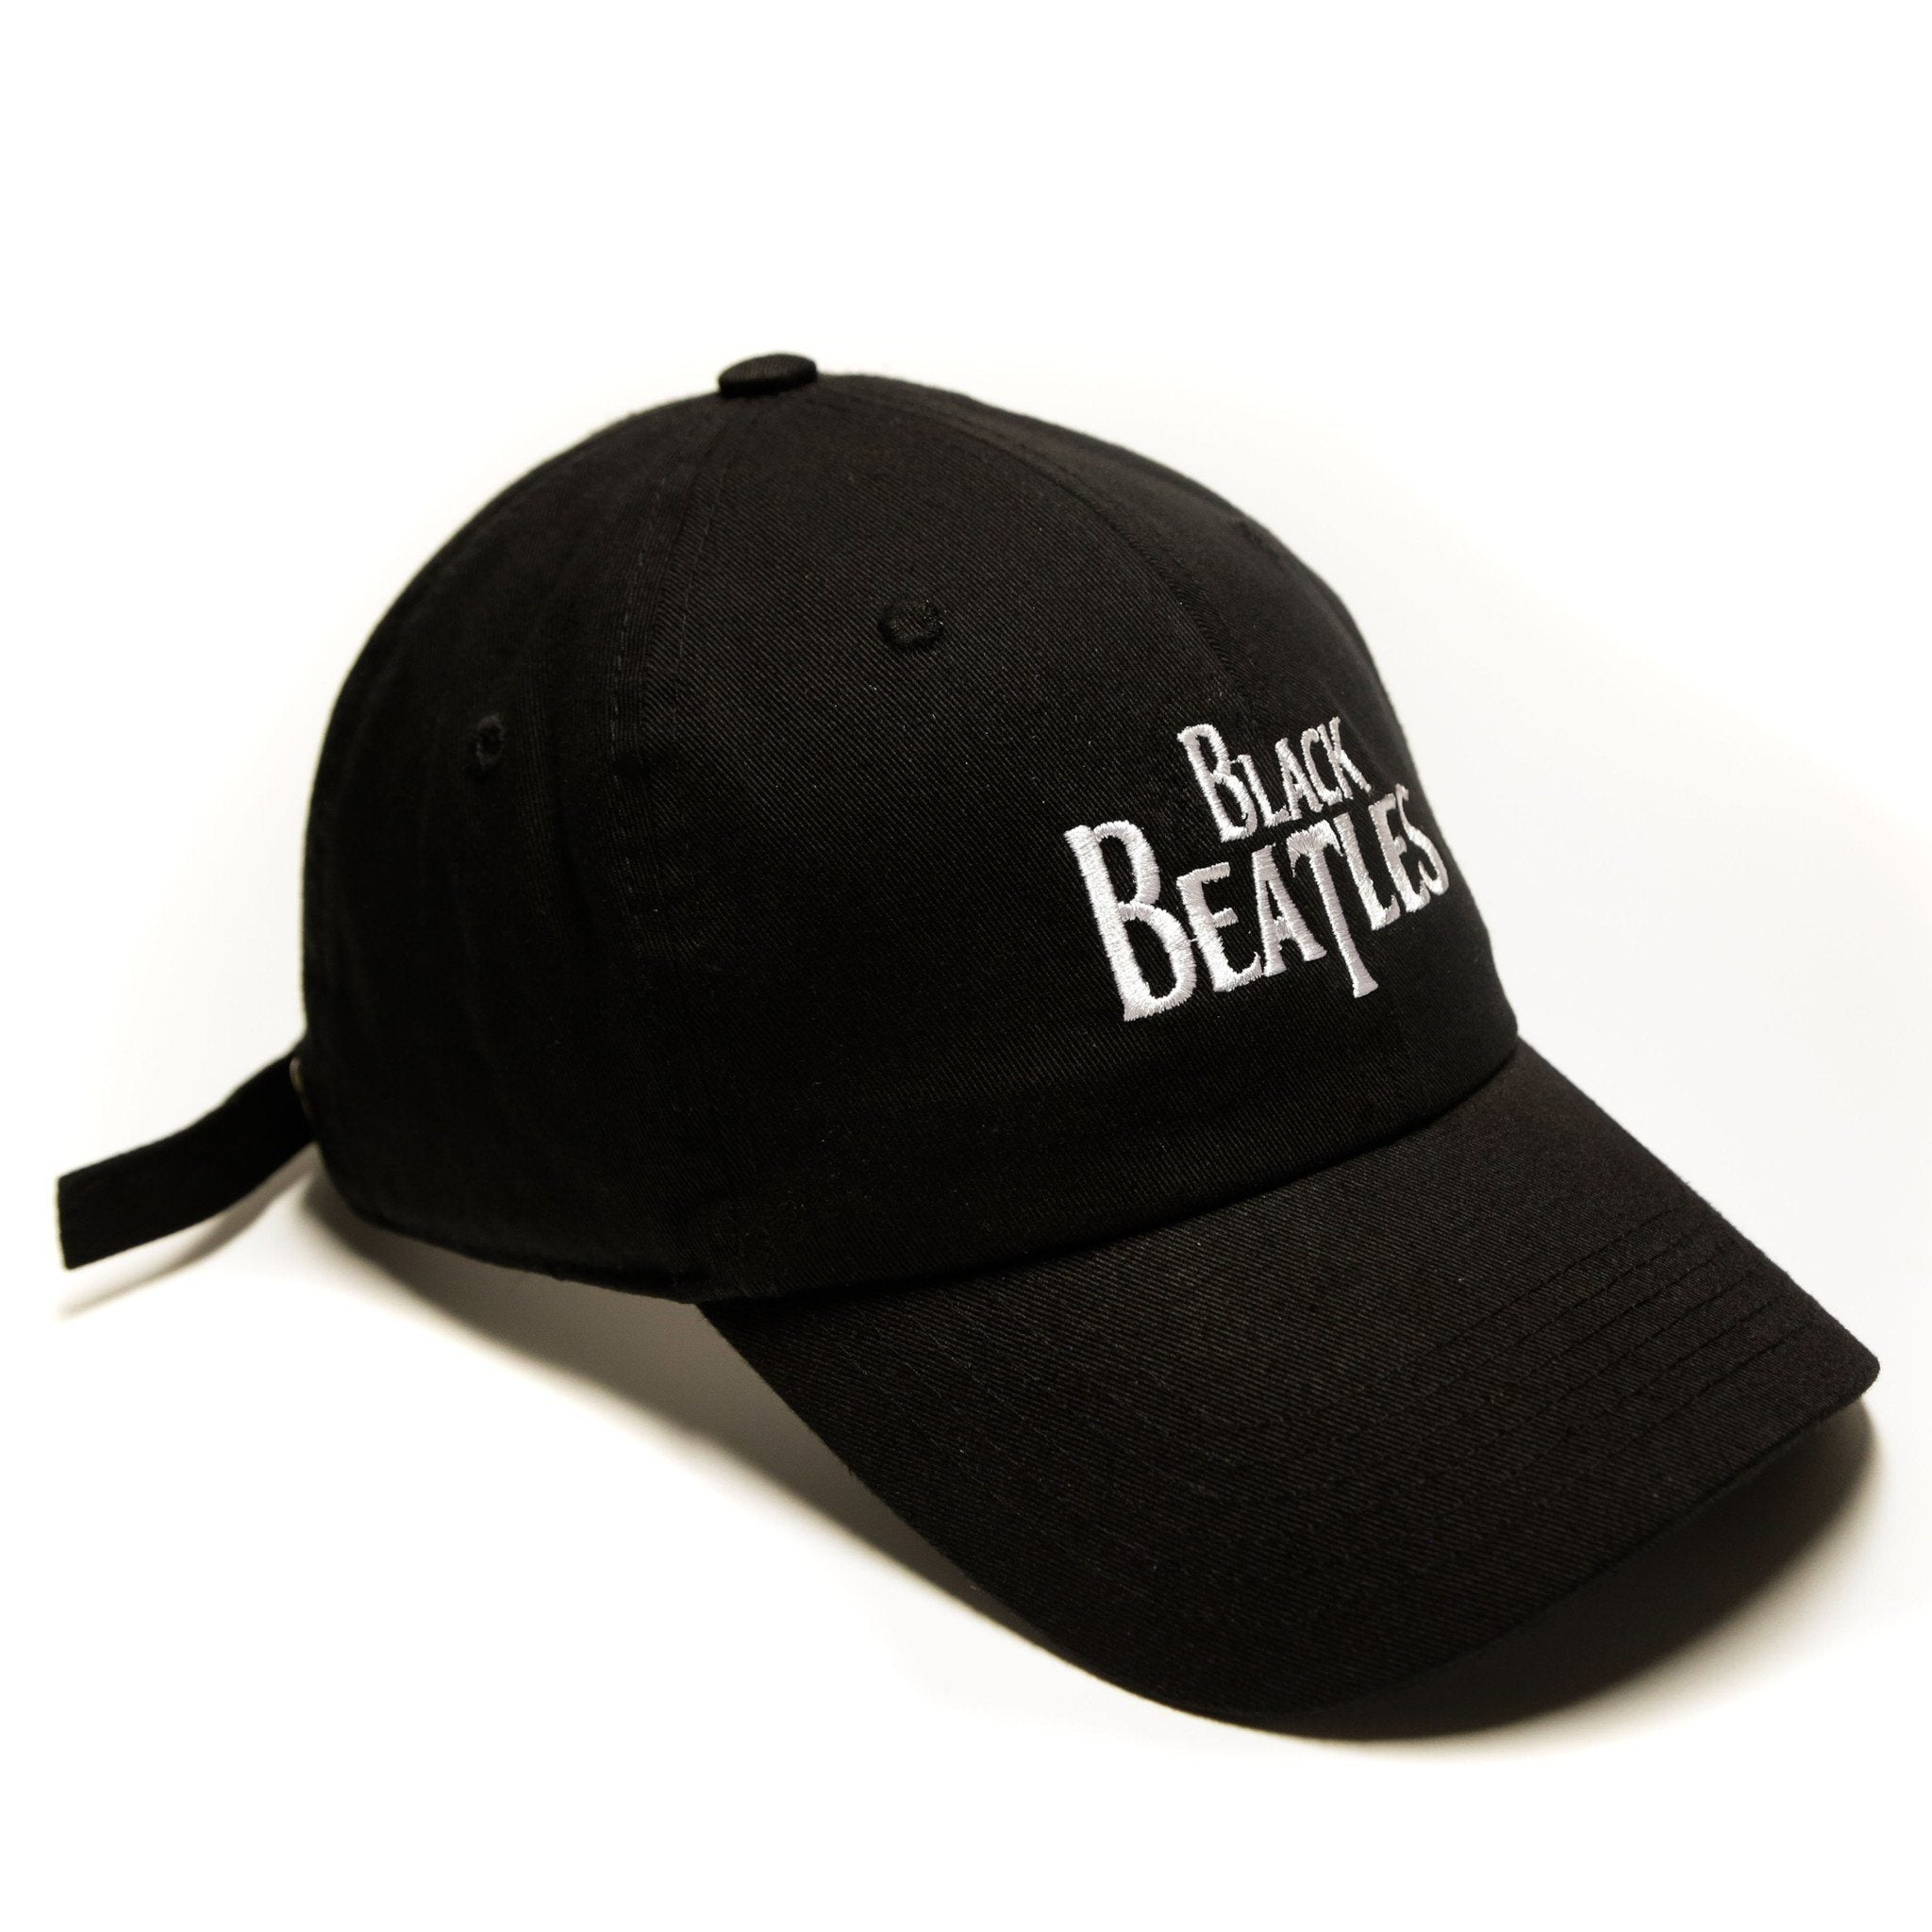 Black Beatles (BLK) Limited Edition